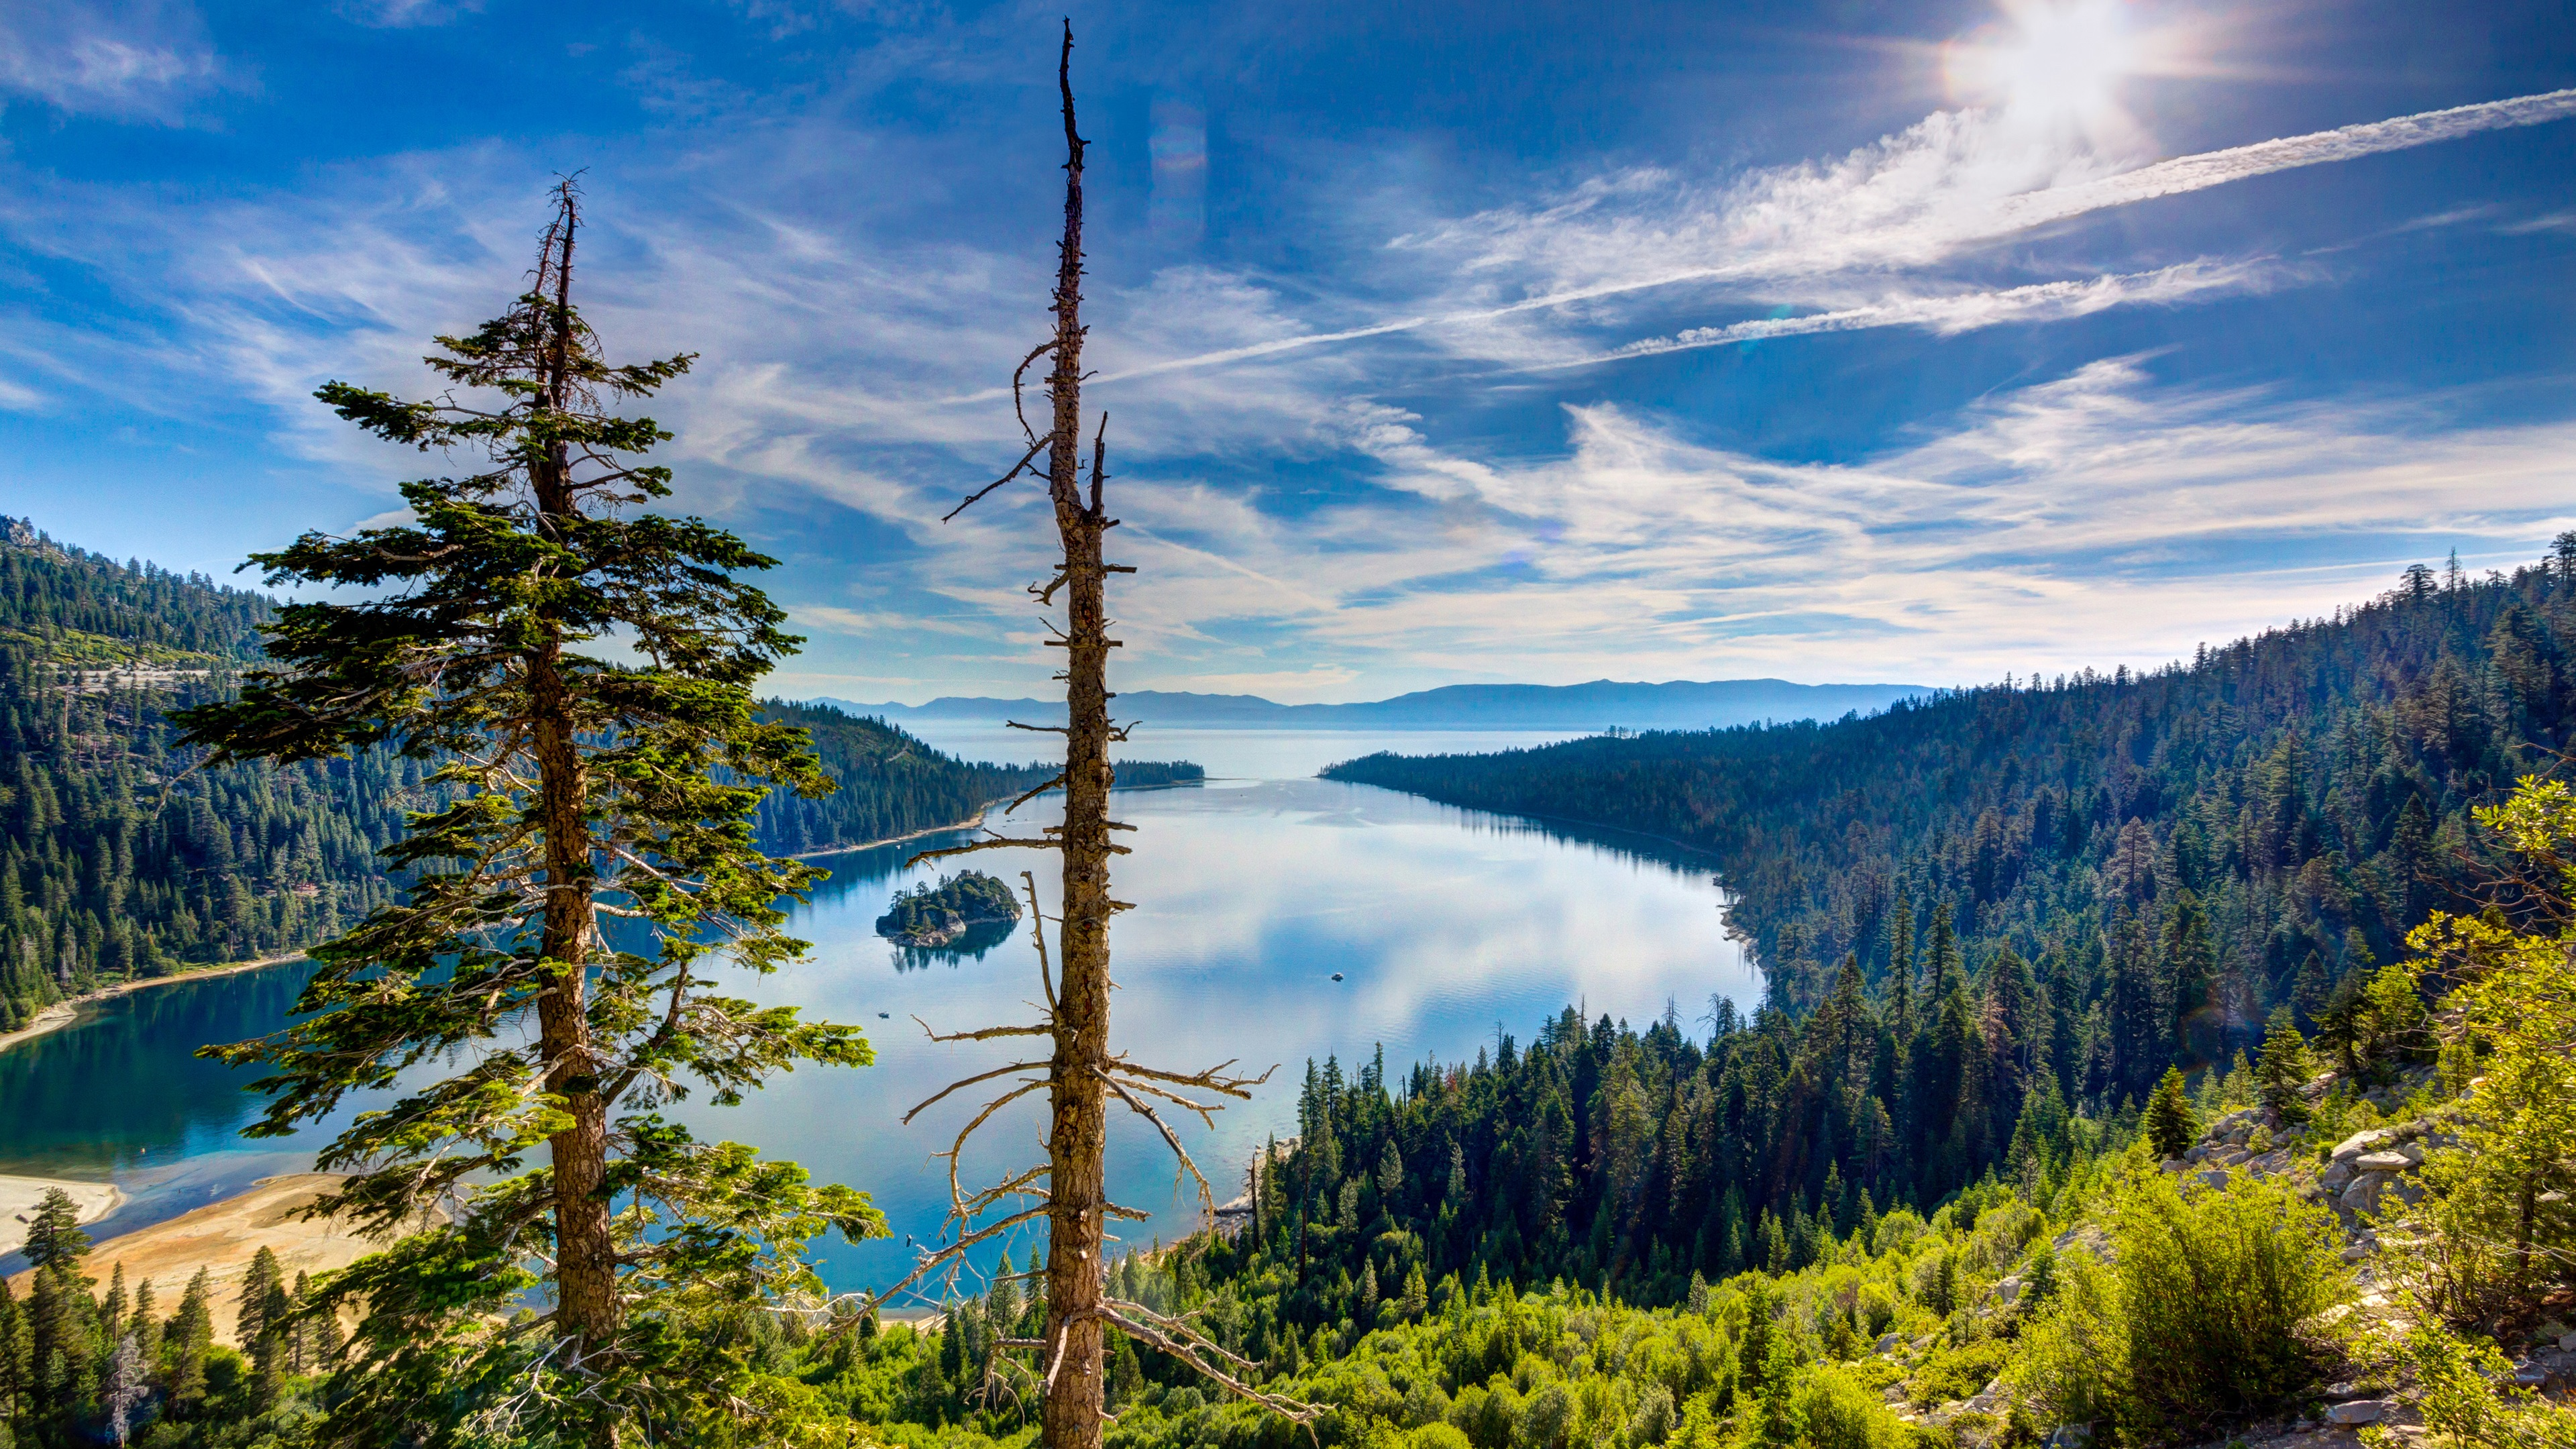 Wallpaper Lake Tahoe California Usa Top View Forest 3840x2160